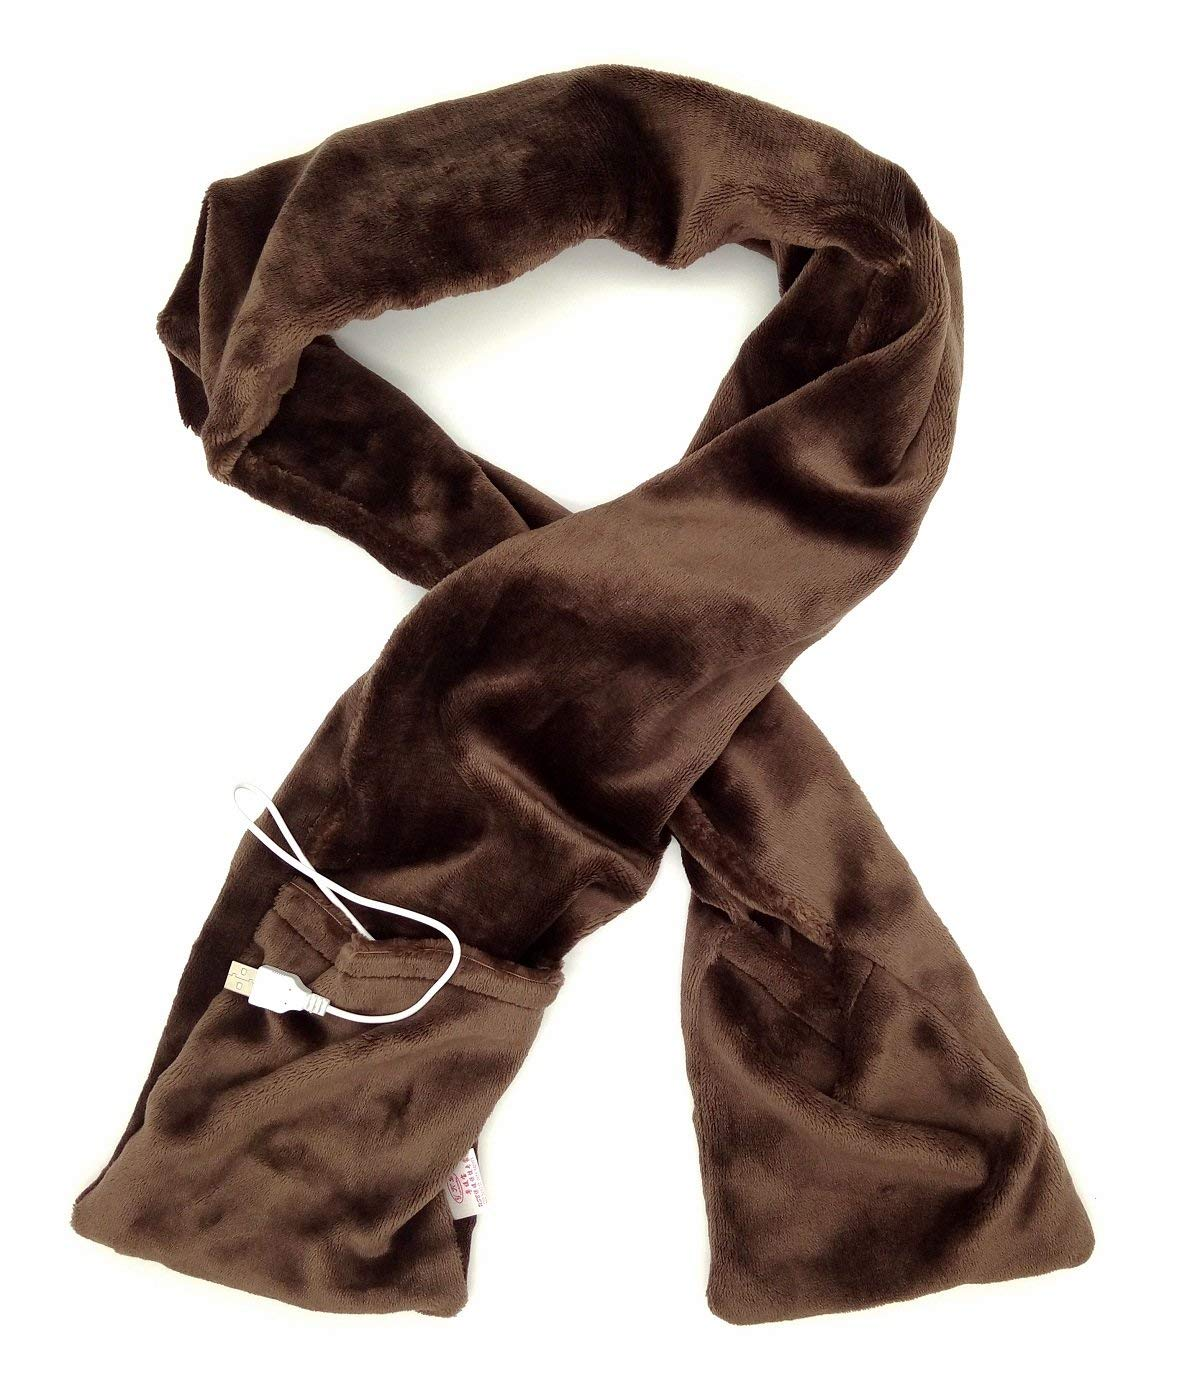 The Best Heating Scarf - USB Heated Scarf